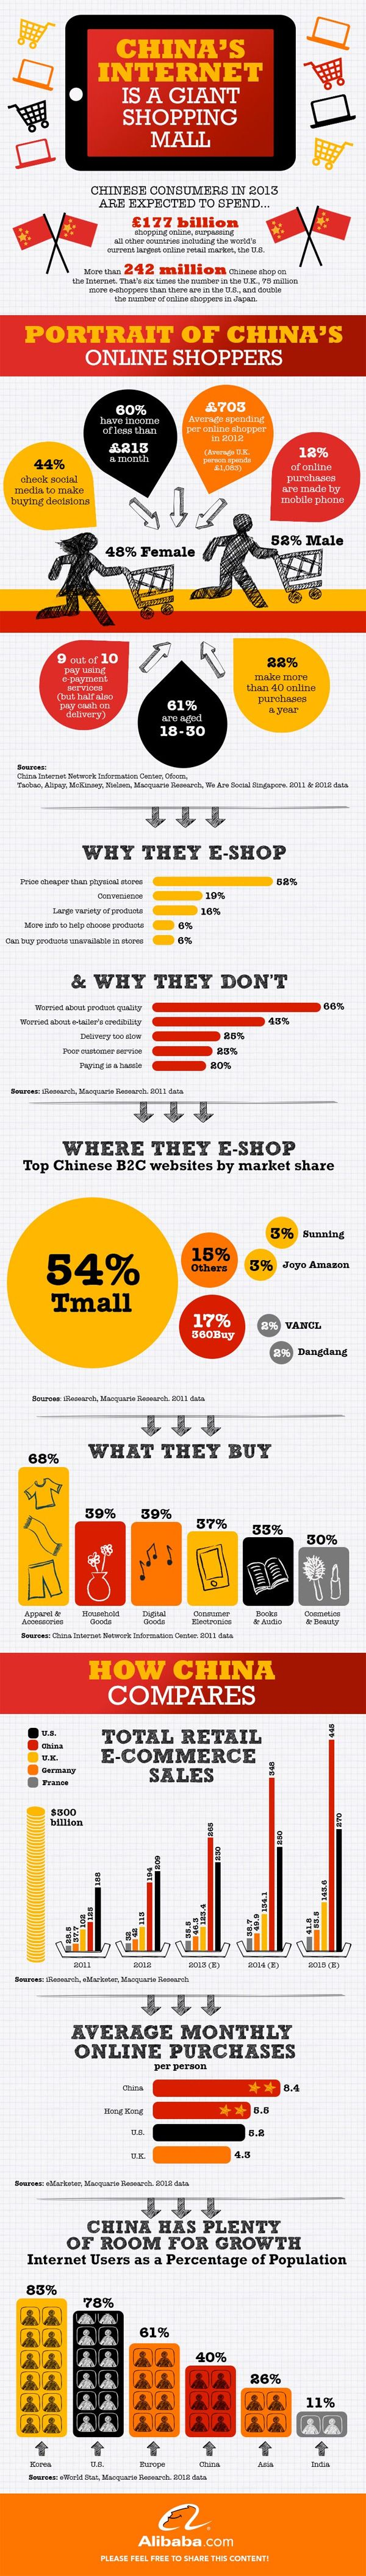 The Ecommerce Boom in China